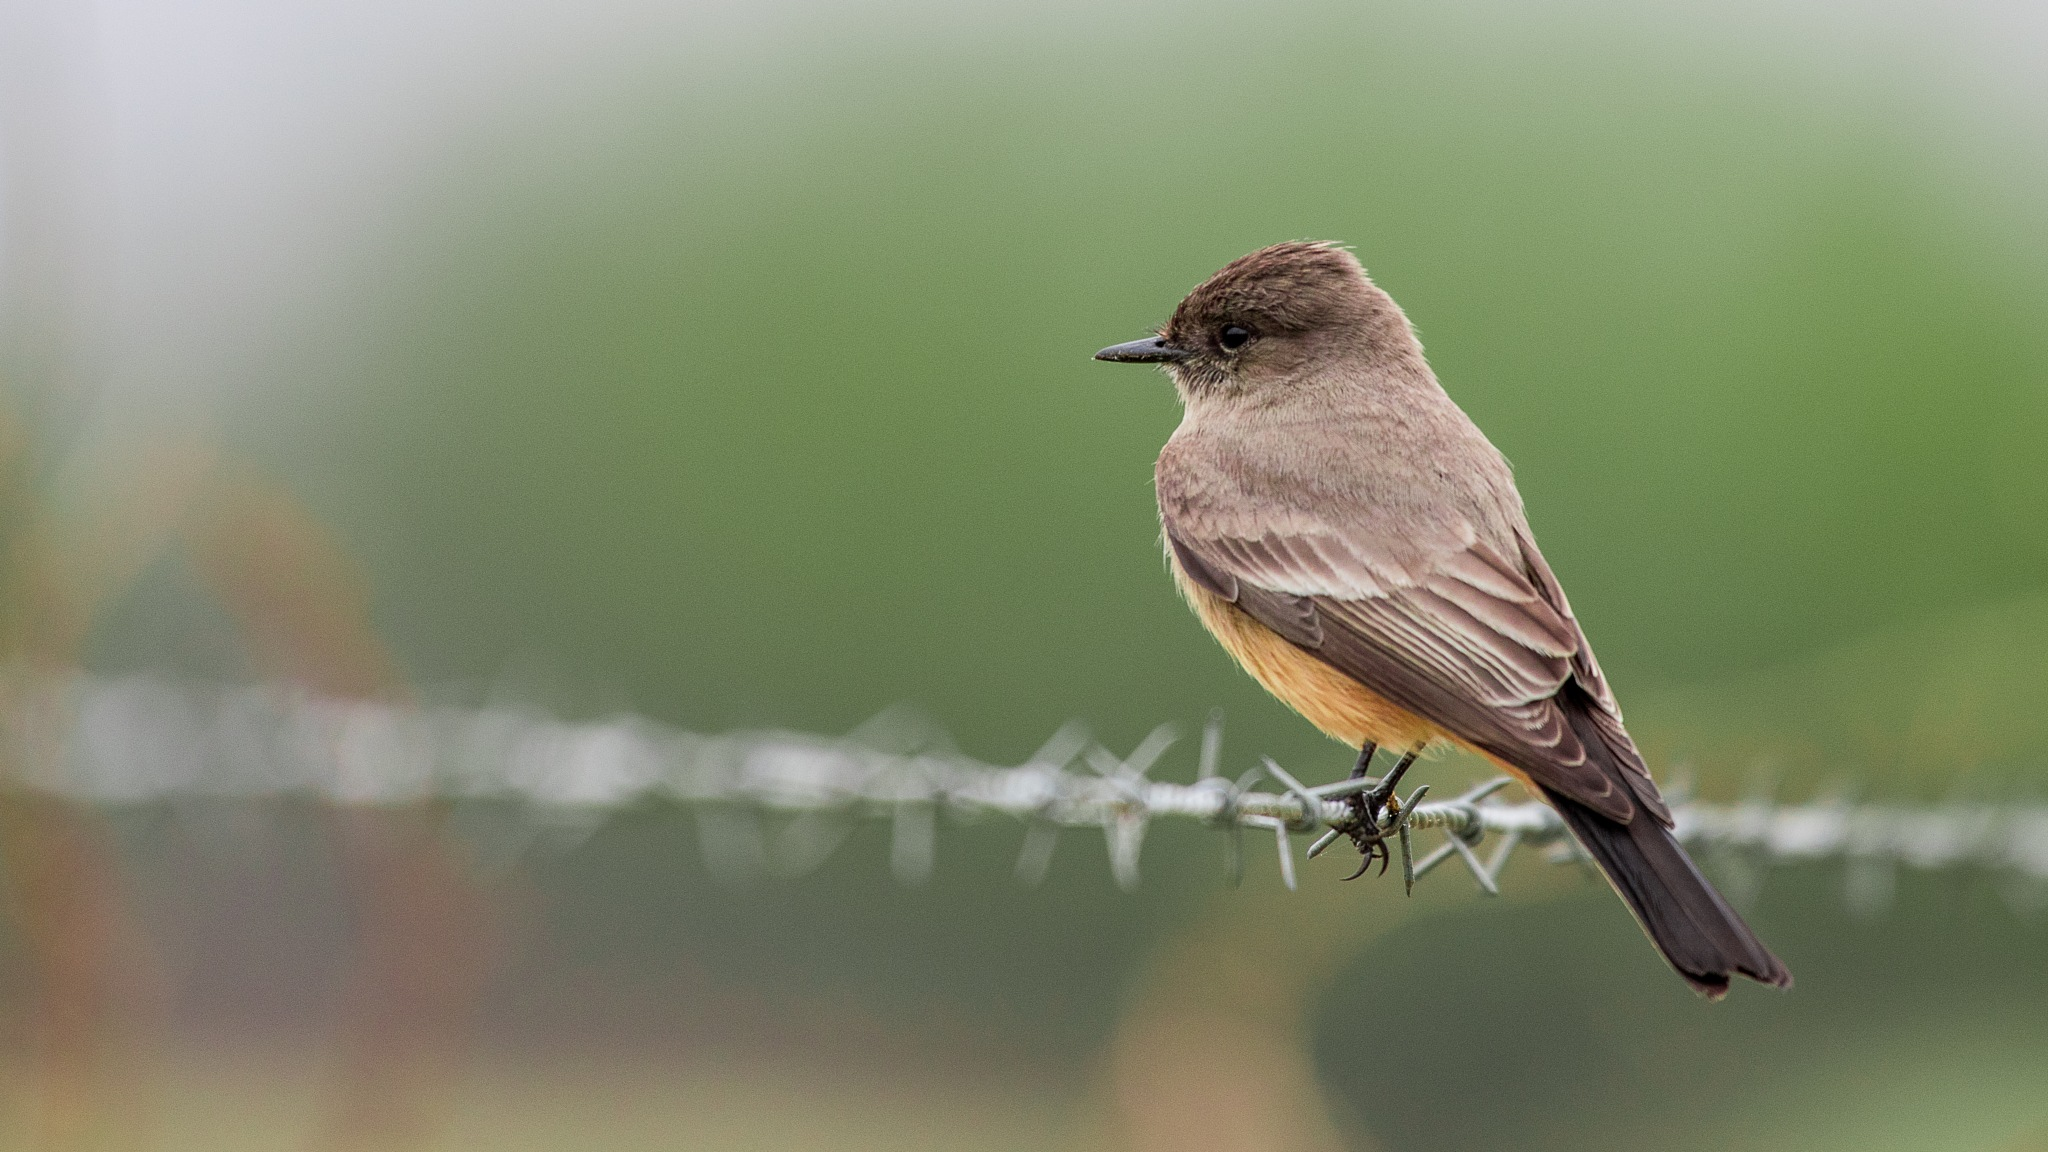 Say's Phoebe On a Wire by Steve Aicinena